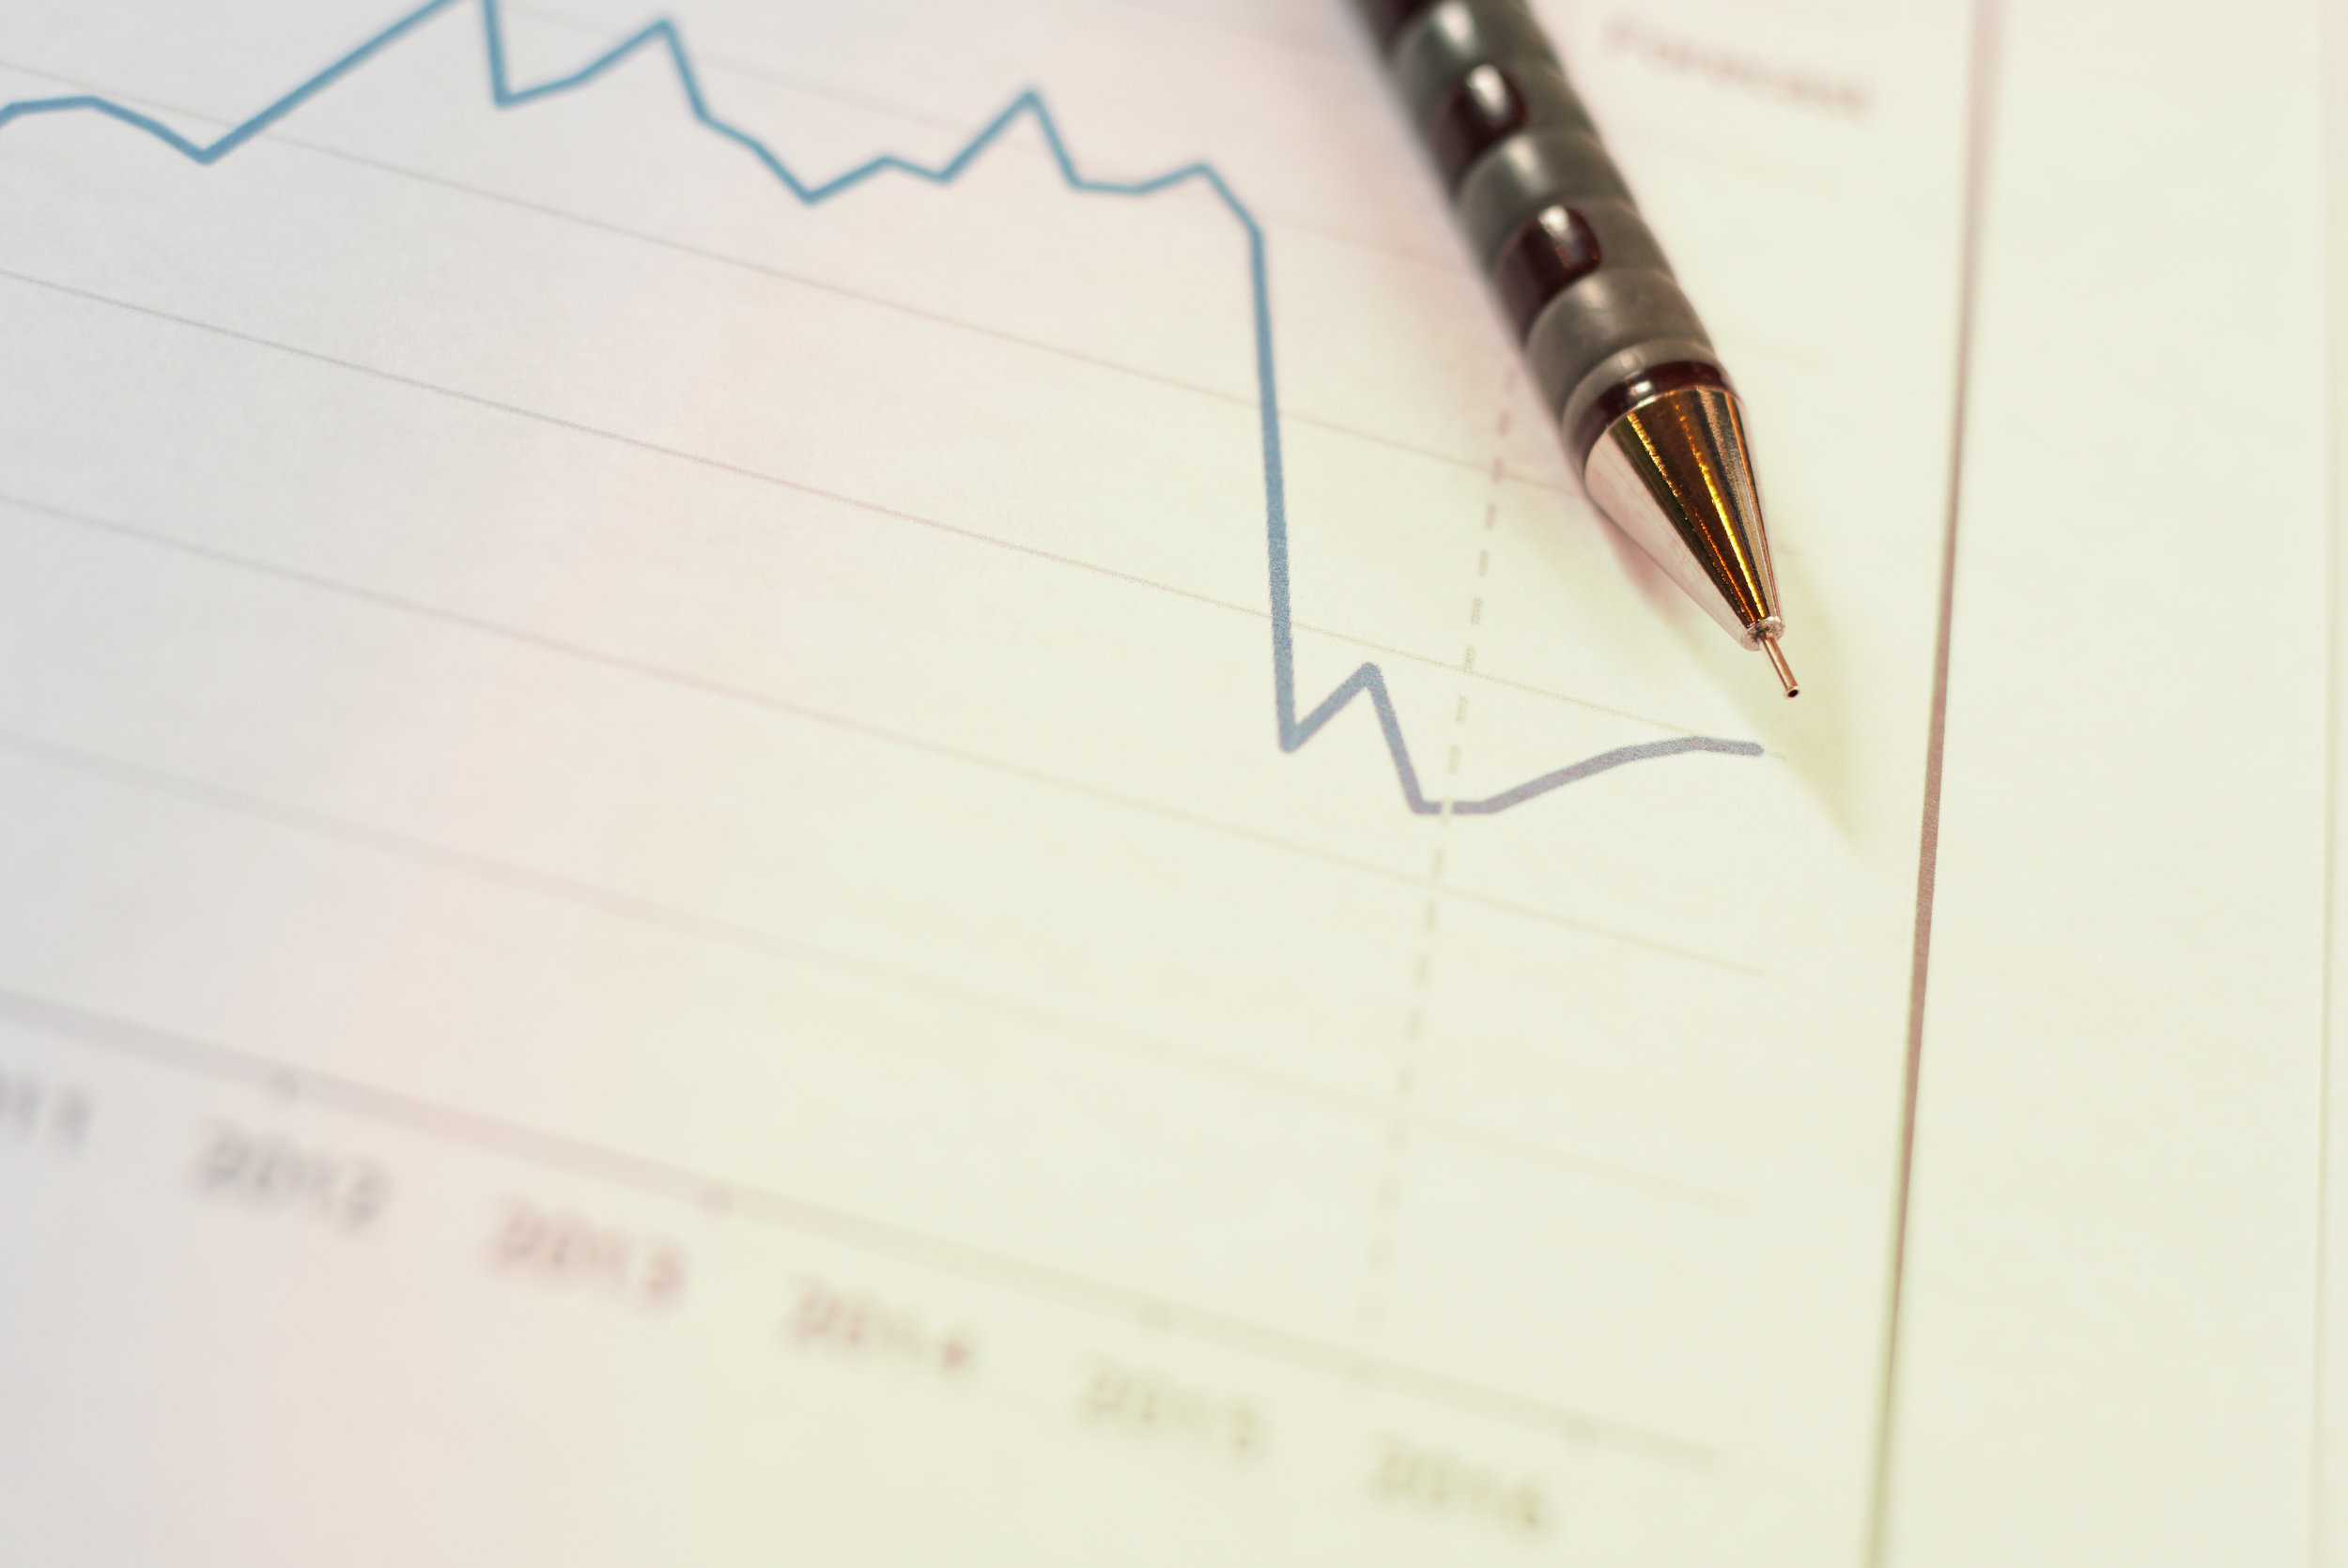 Financial Modeling and Forecasting -